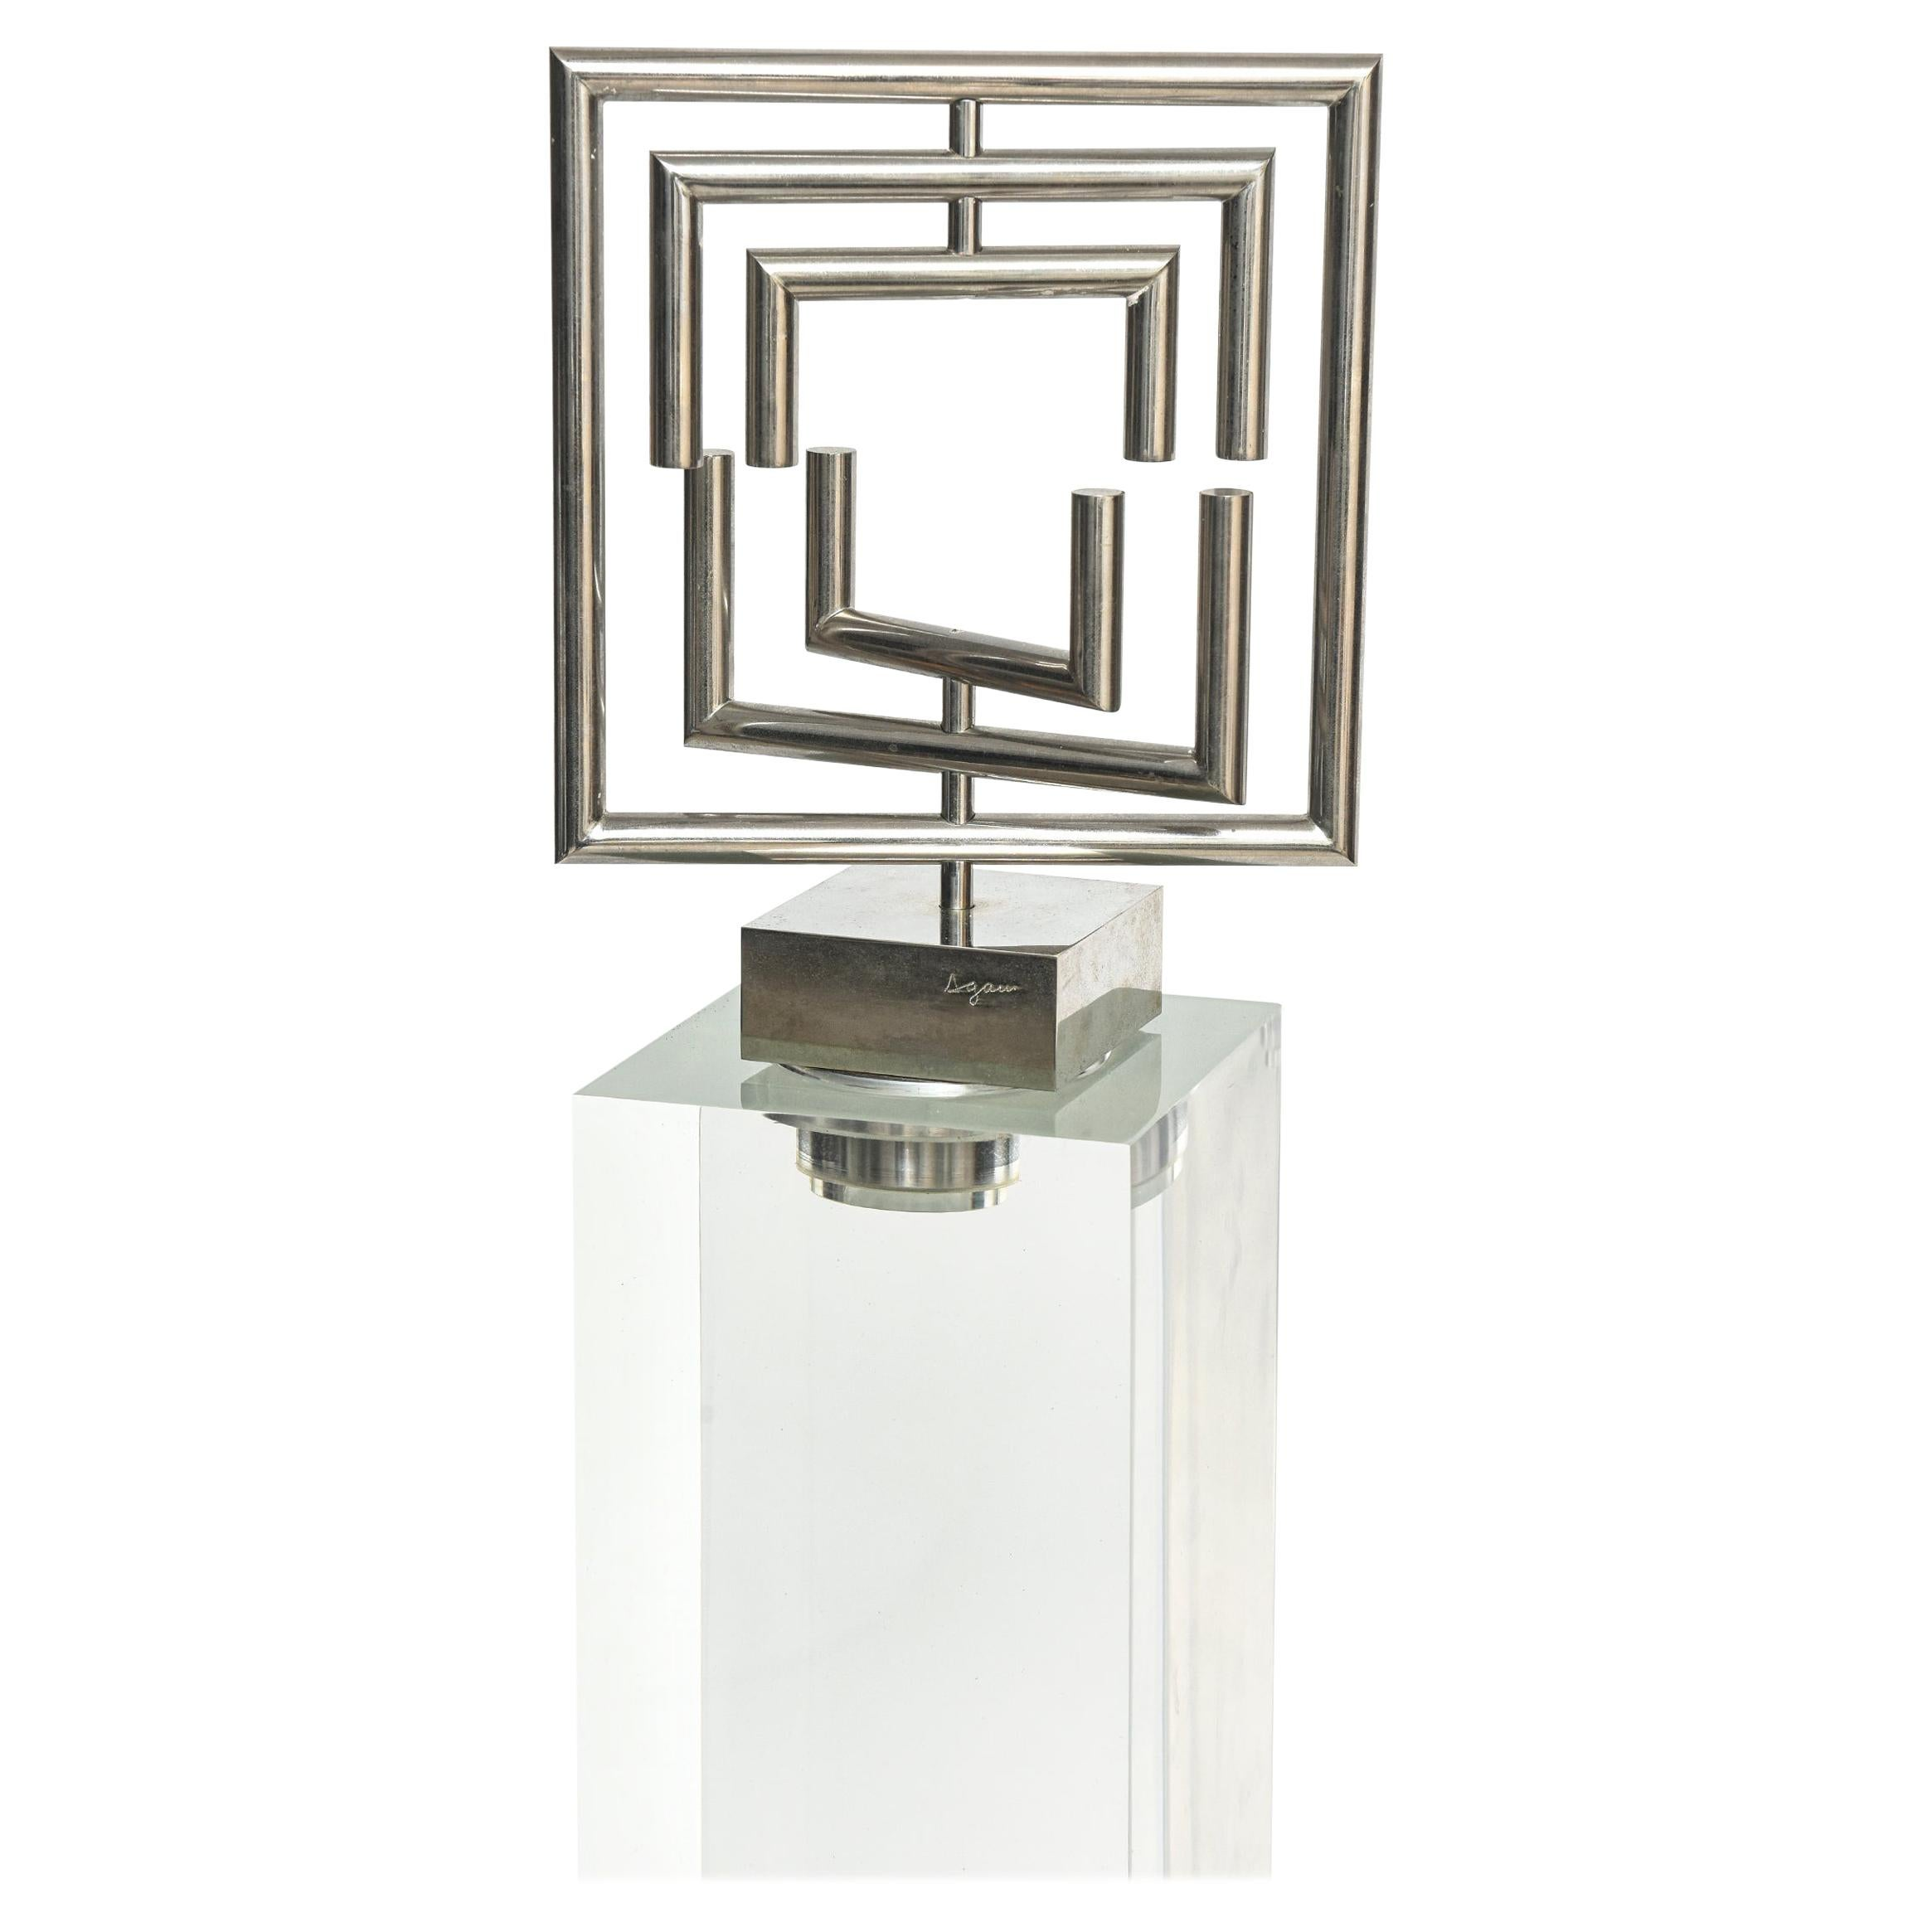 Agam Kinetic Space Divider Sculpture Limited Edition Artist Proof & Lucite Stand